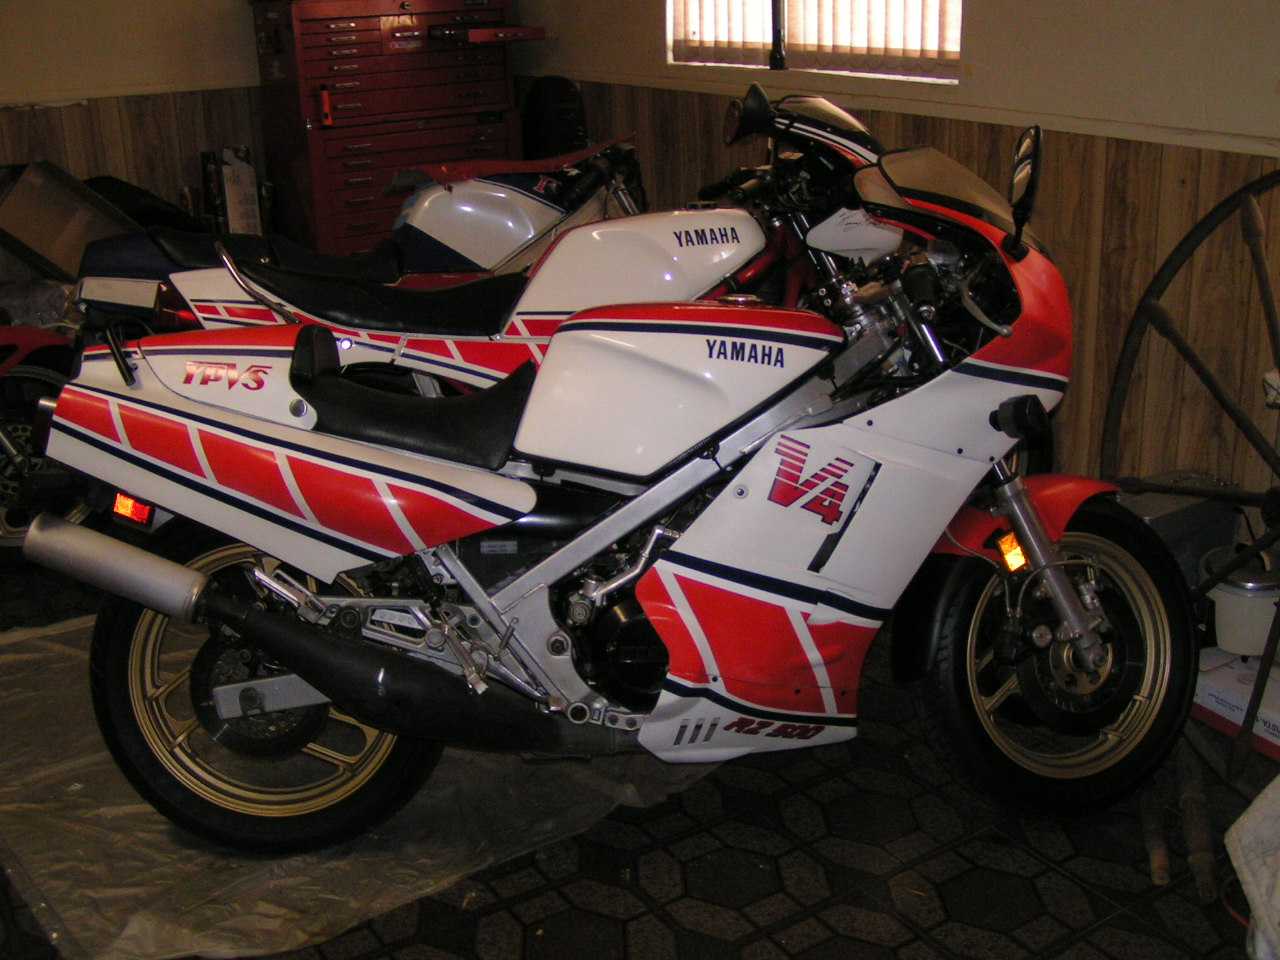 RZ500 Archives - Page 12 of 16 - Rare SportBikes For Sale